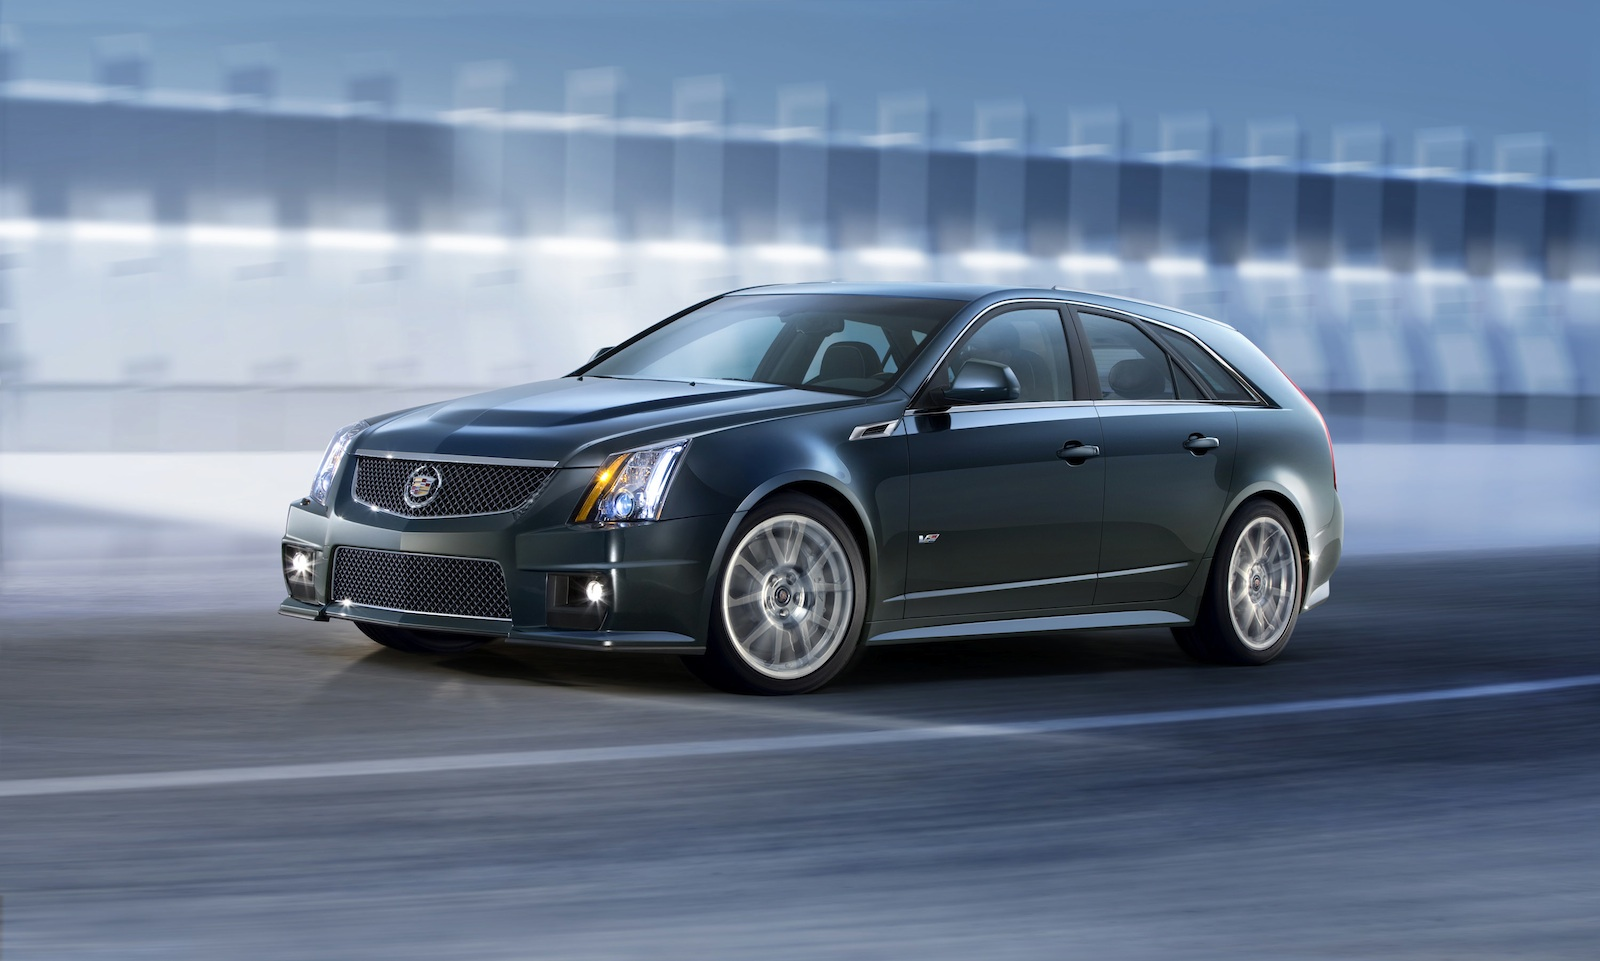 Road Car Pictures: 2011 Cadillac CTS-V Sport Wagon